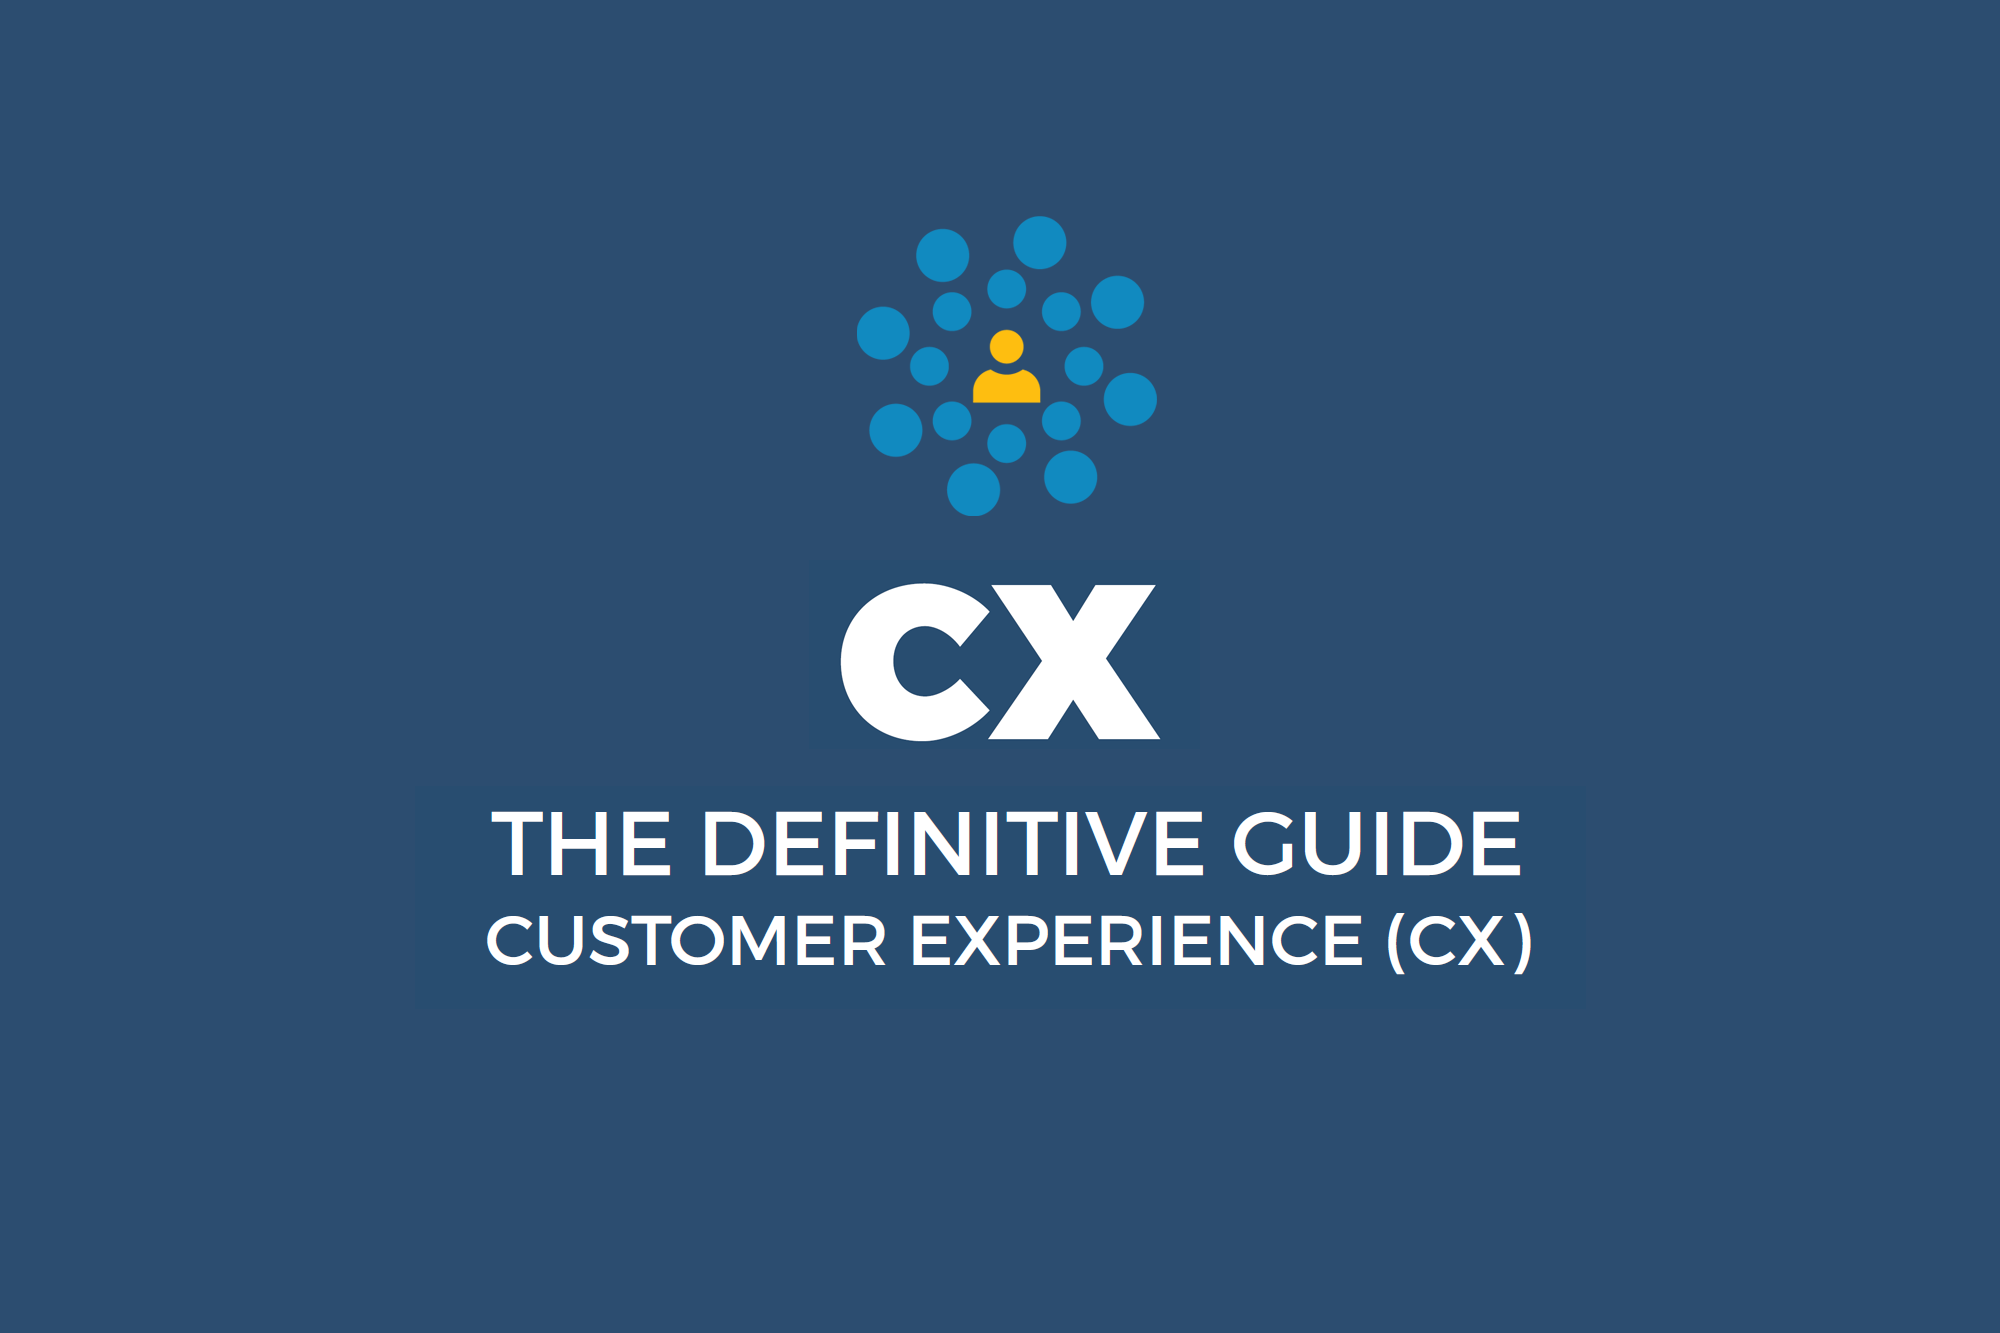 Customer Experience (CX) - The Definitive Guide